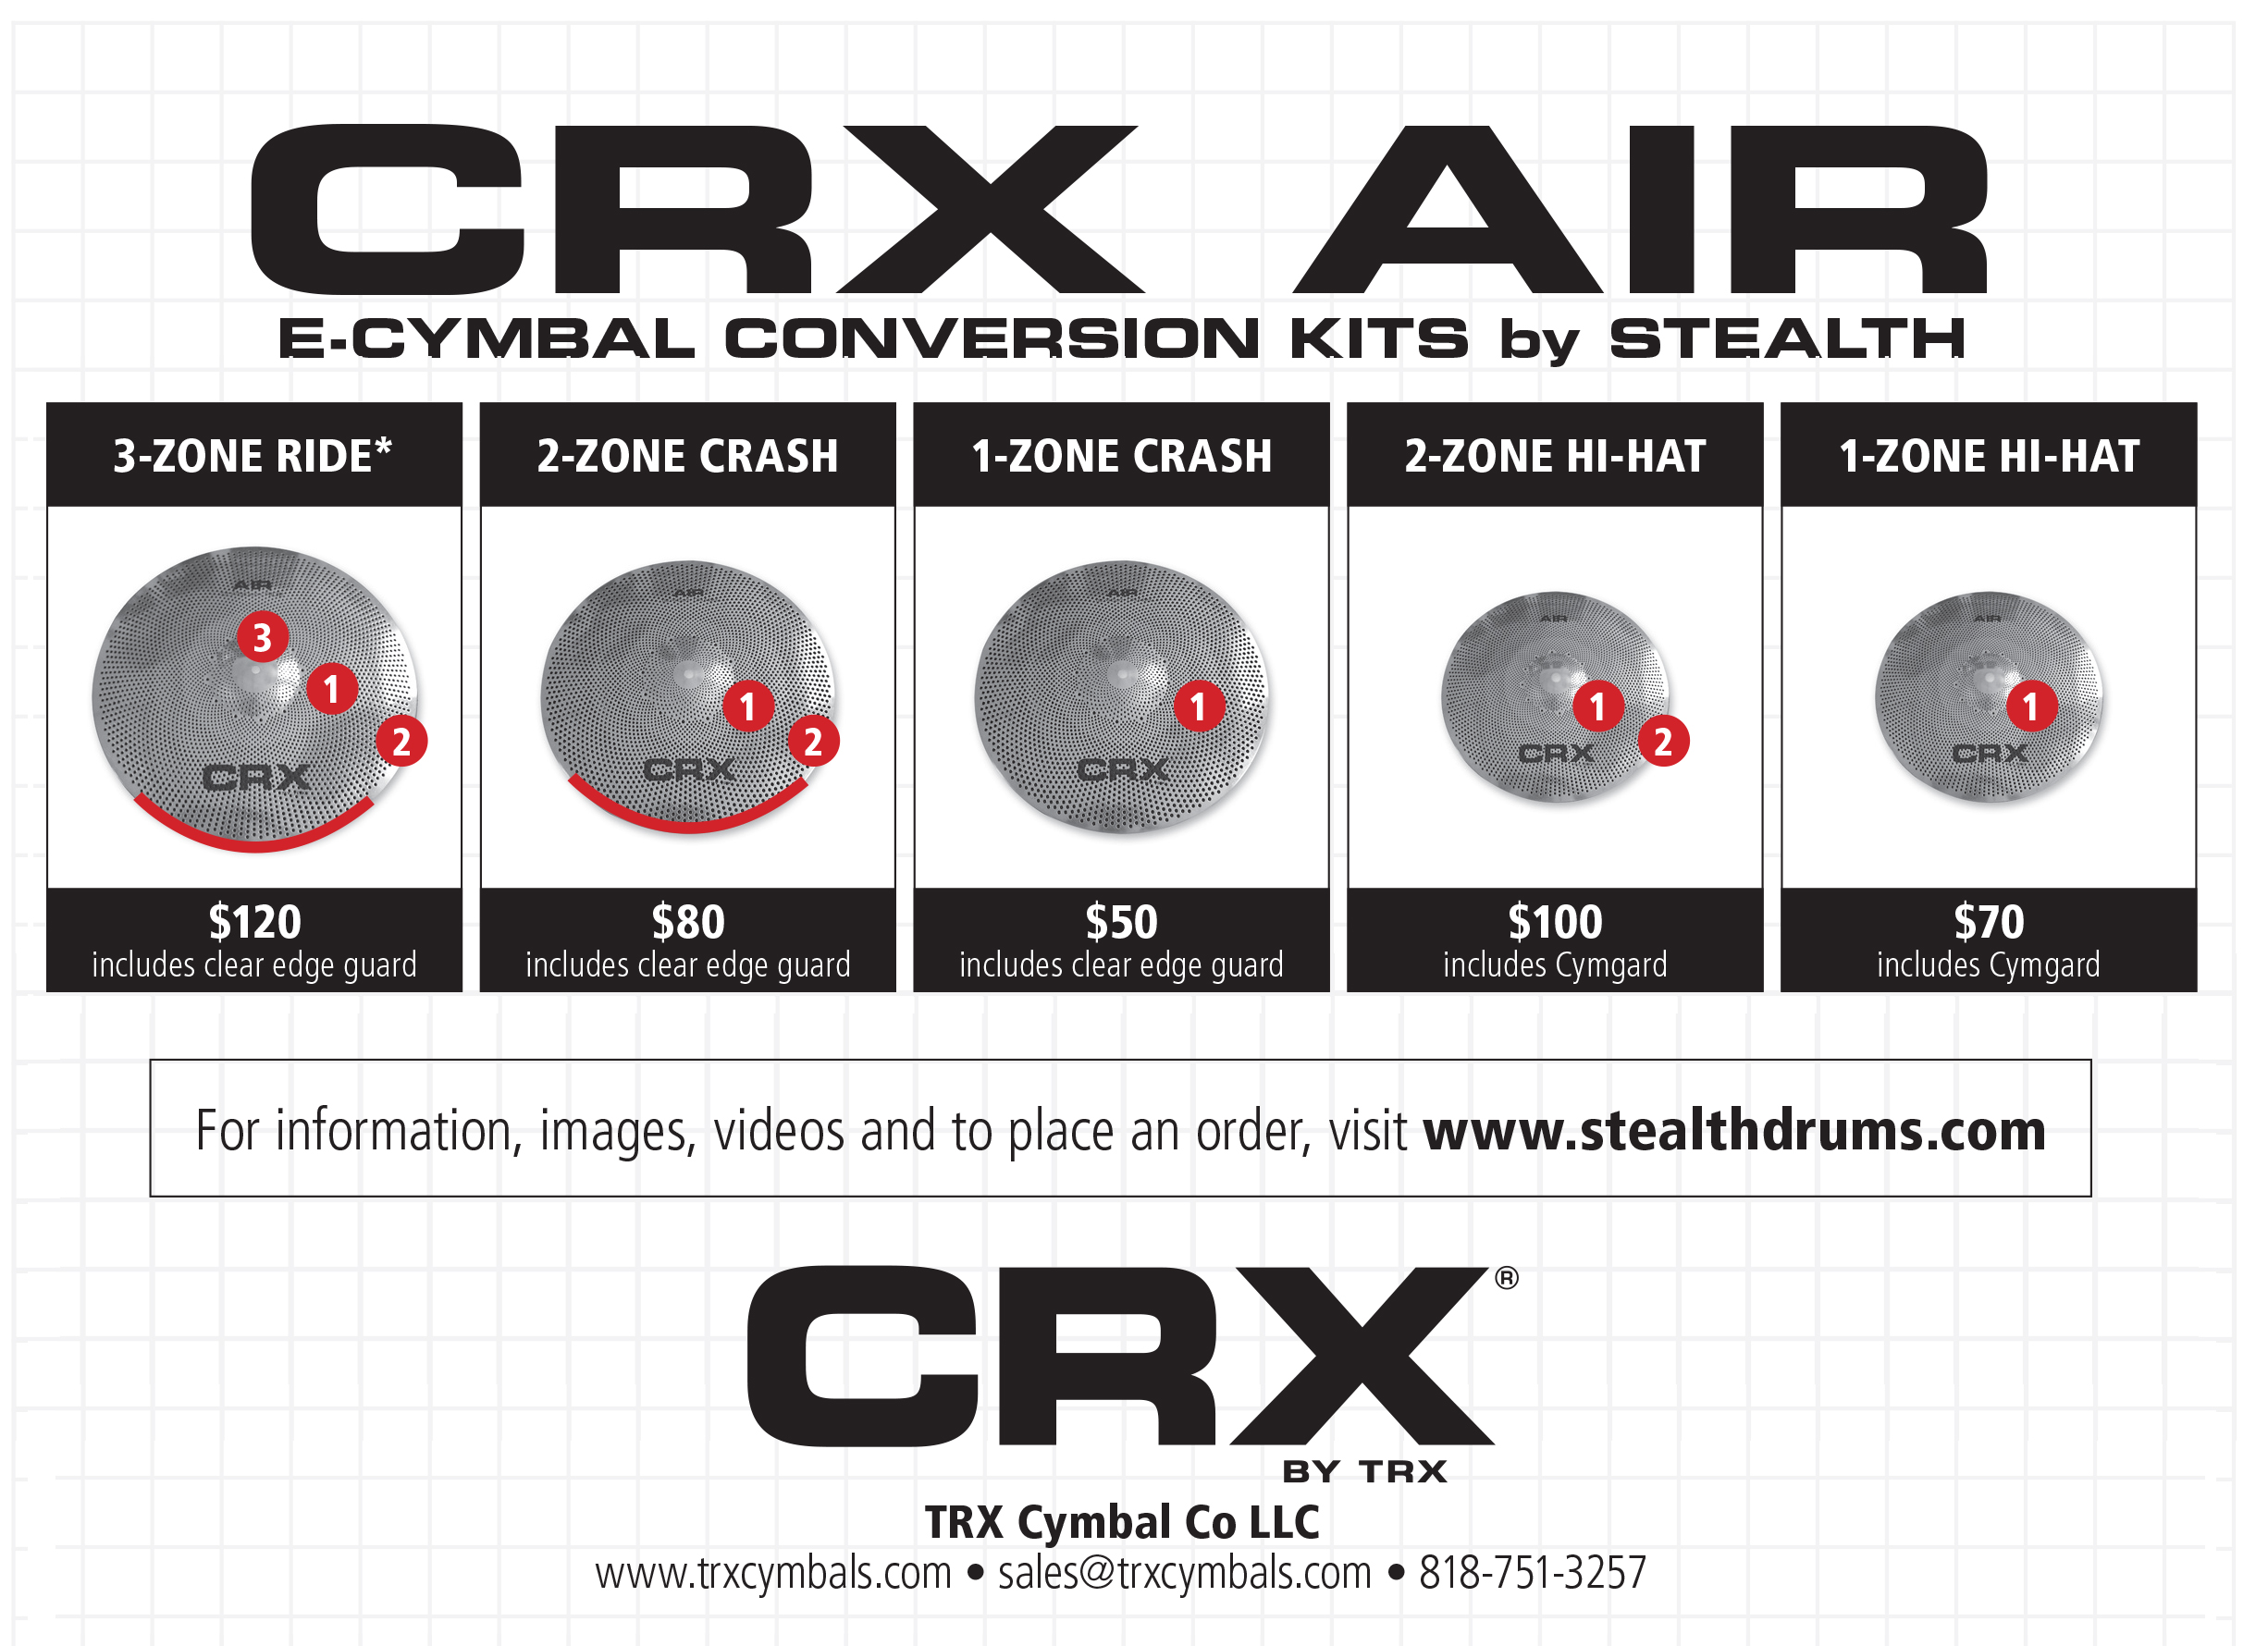 E-Cymbal Conversion Kits Now Available For CRX AIR Low-Volume Cymbals.